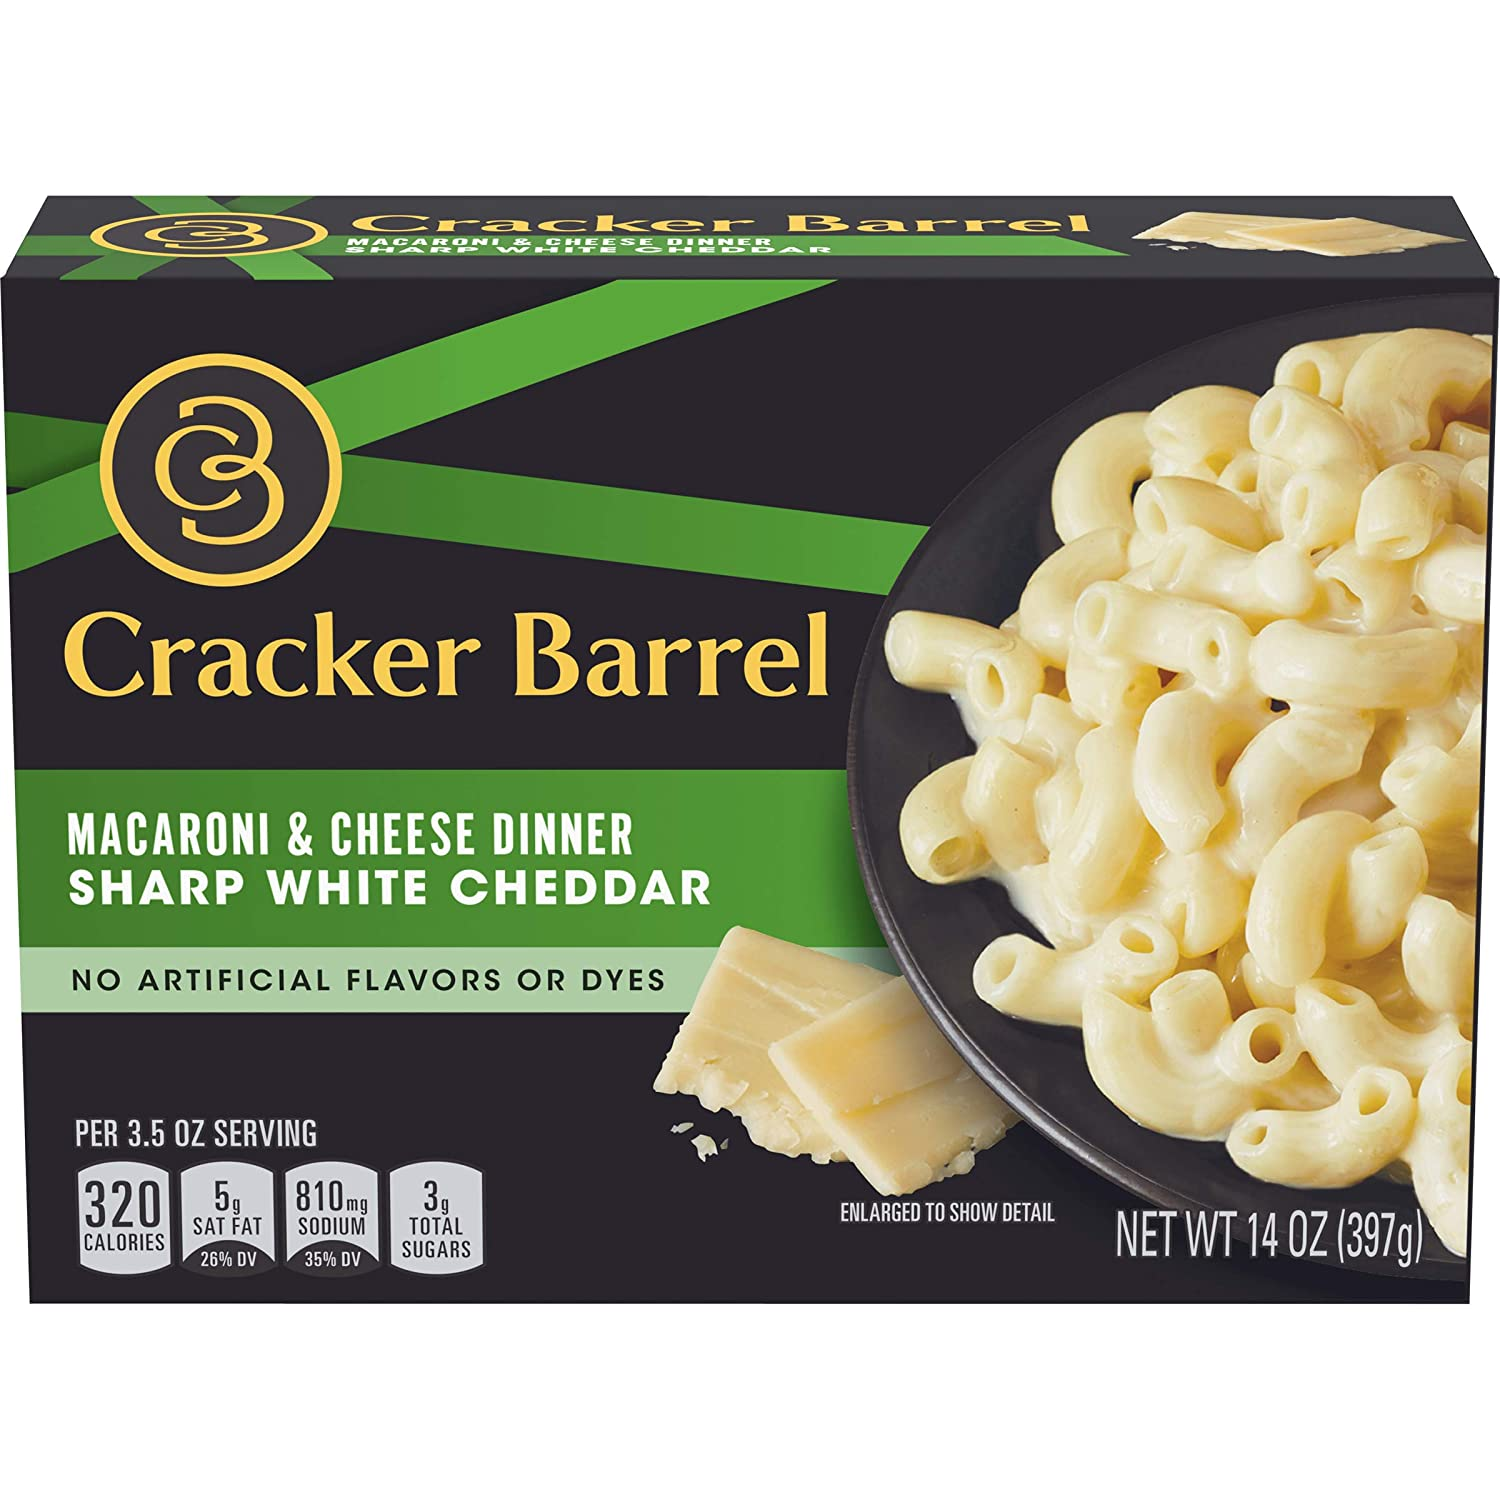 Cracker Barrel Sharp White Cheddar Macaroni and Cheese Dinner (14 oz Boxes, Pack of 12)